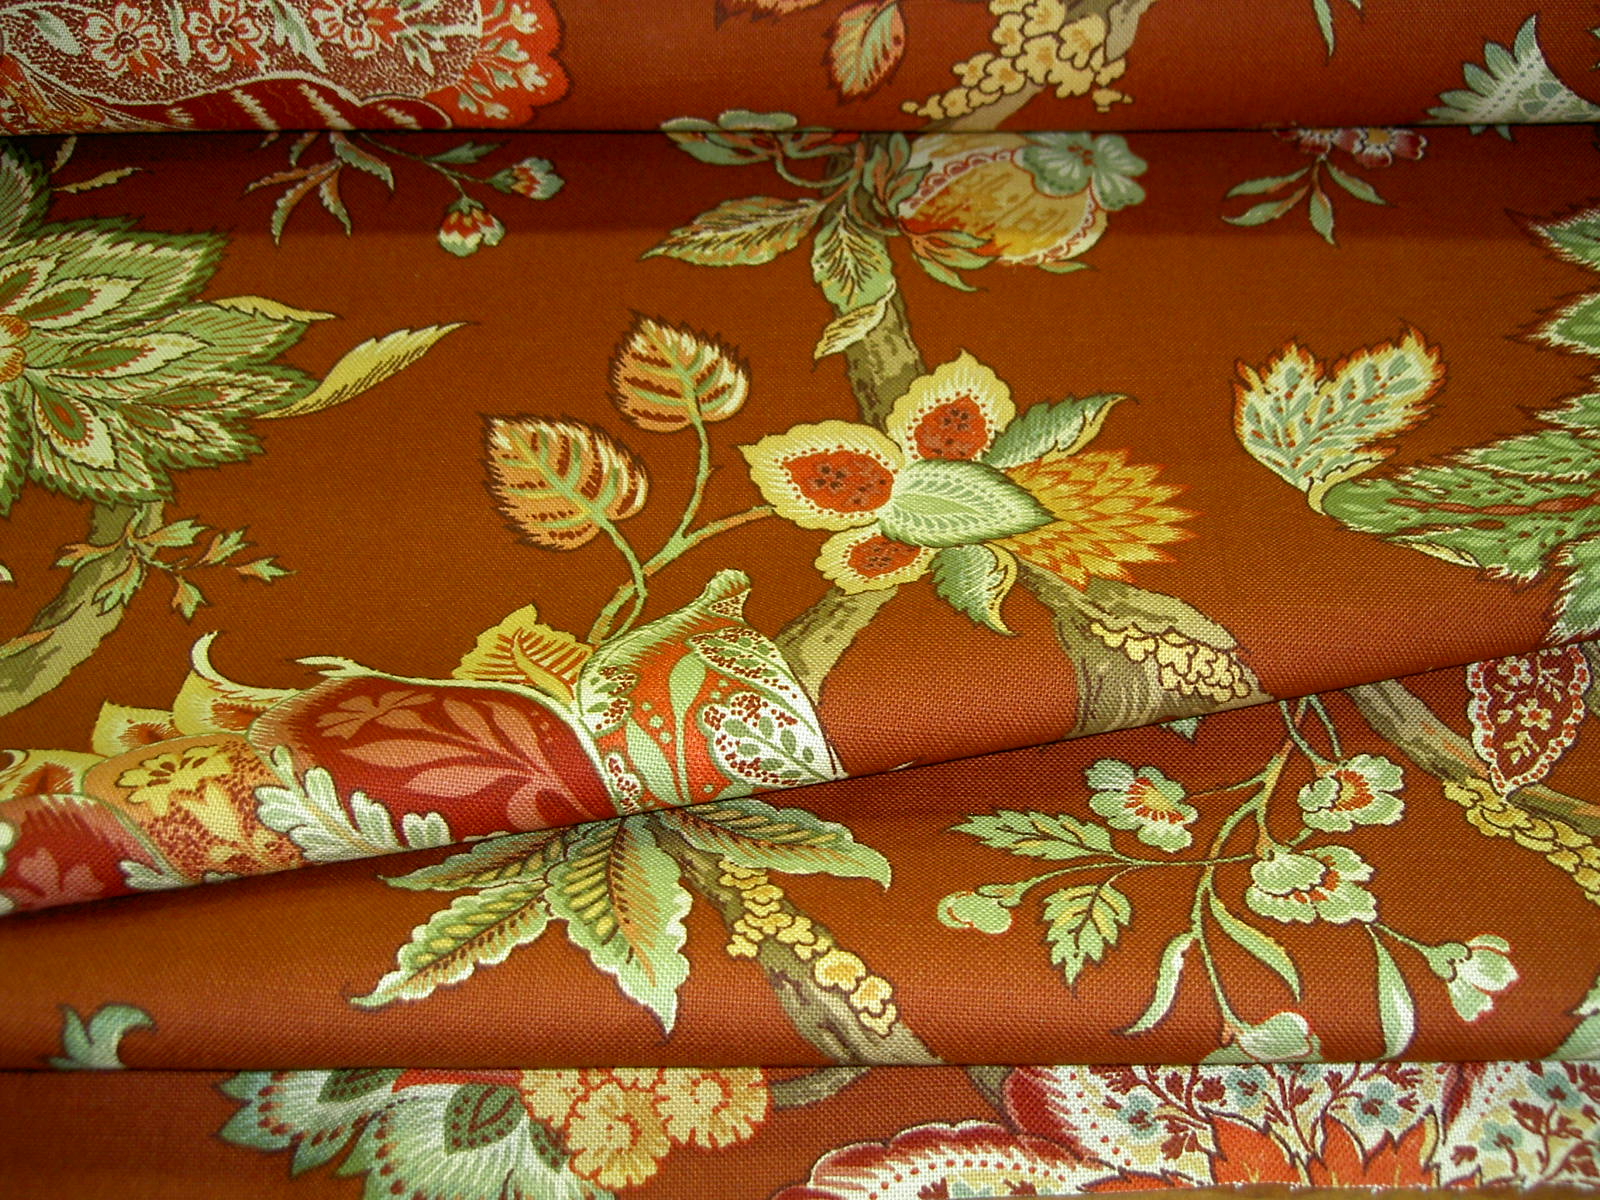 braemore fabrics pattern monrovia oxf color burnt sienna home decor multi use fabric - Discount Designer Home Decor